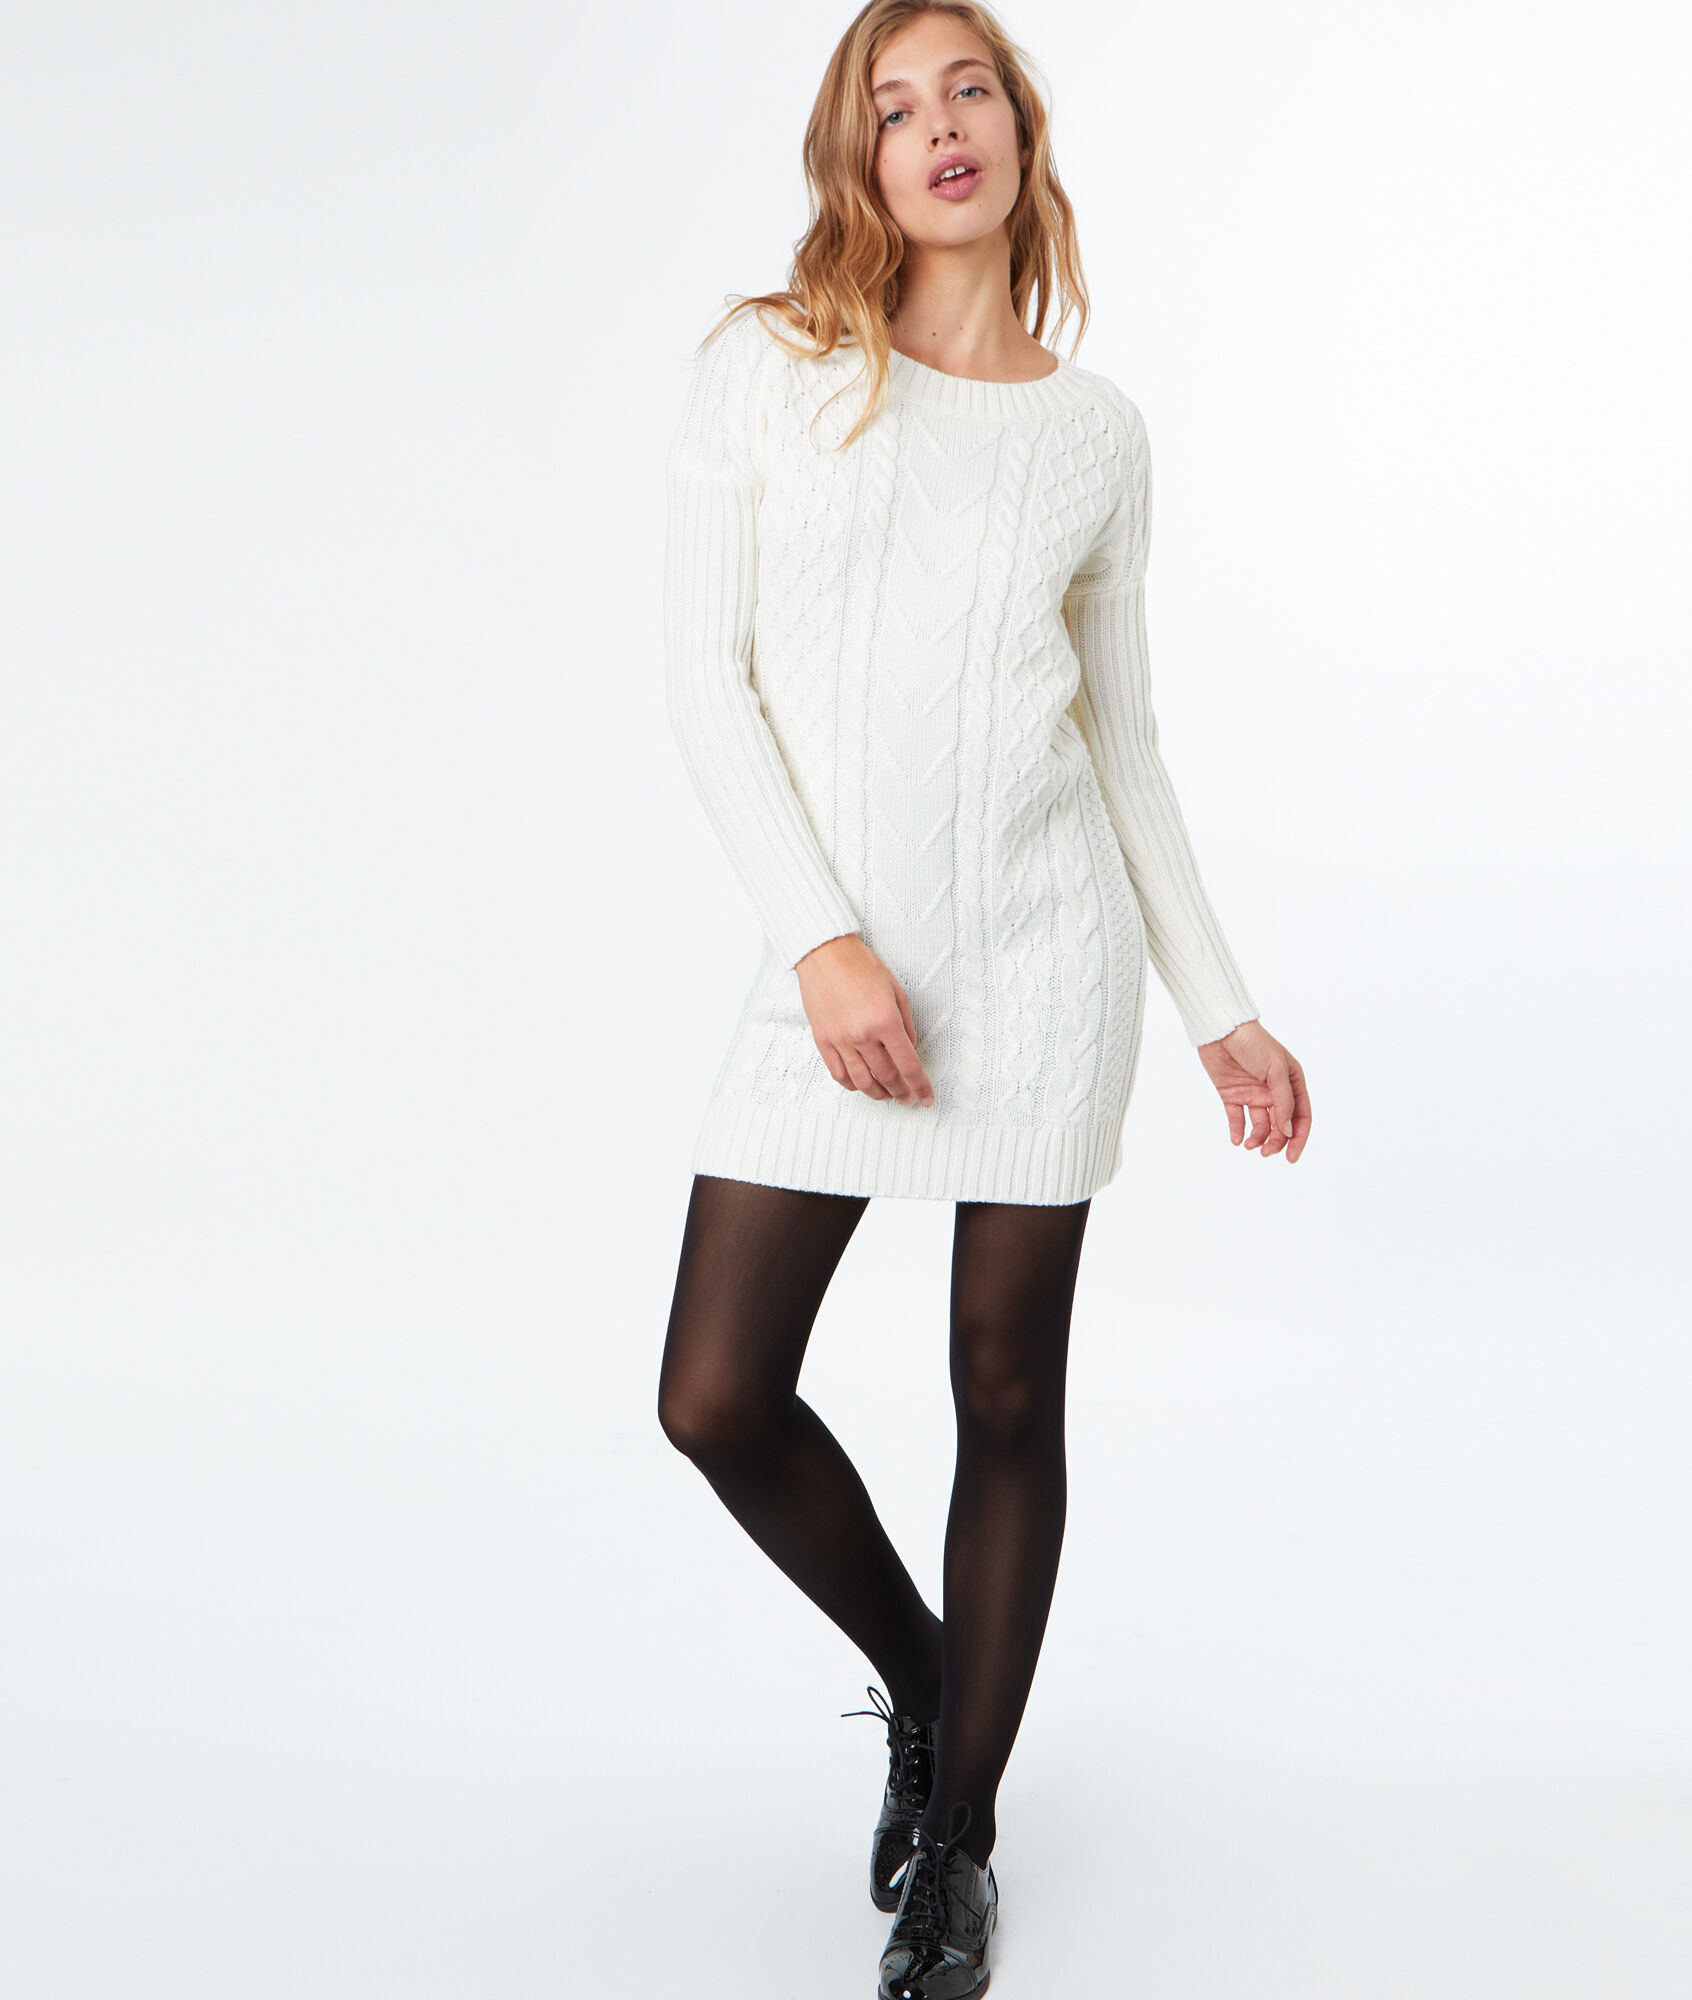 Ou trouver robe pull